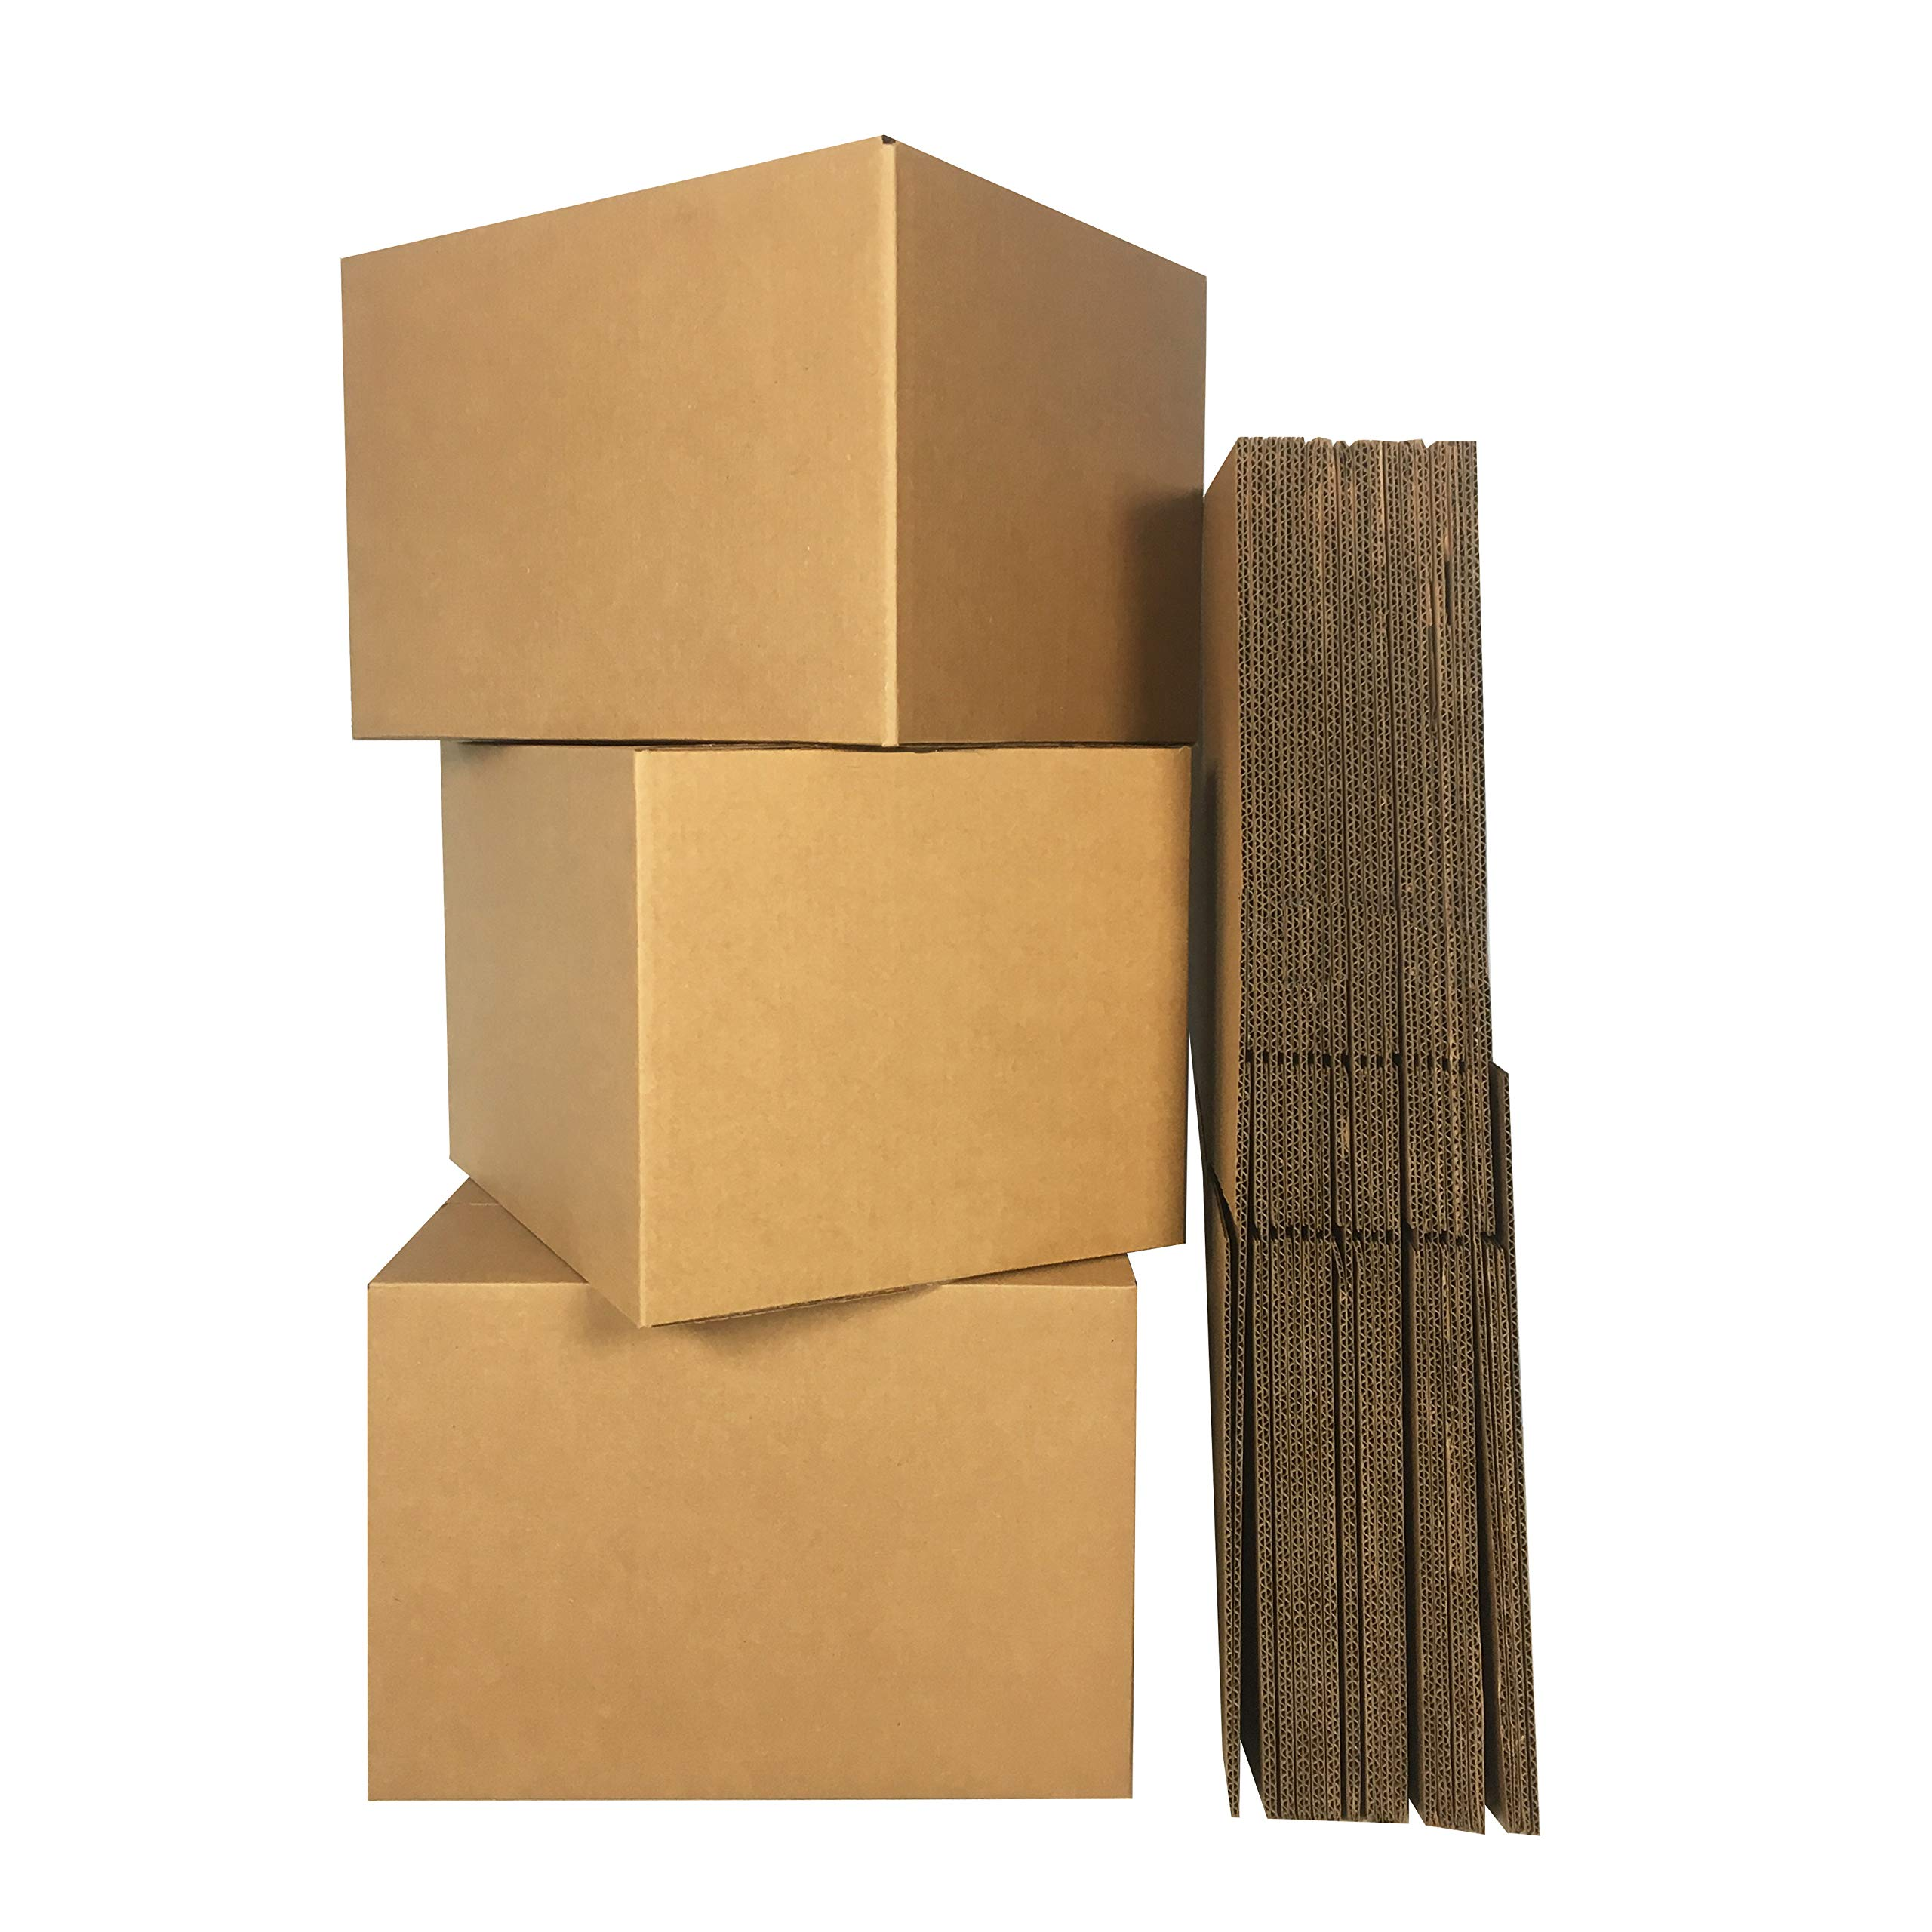 uBoxes Medium Moving Boxes, 18 x 14 x 12 inch, 10 Pack, Cardboard Box (BOXMINIMED10) by Uboxes (Image #1)